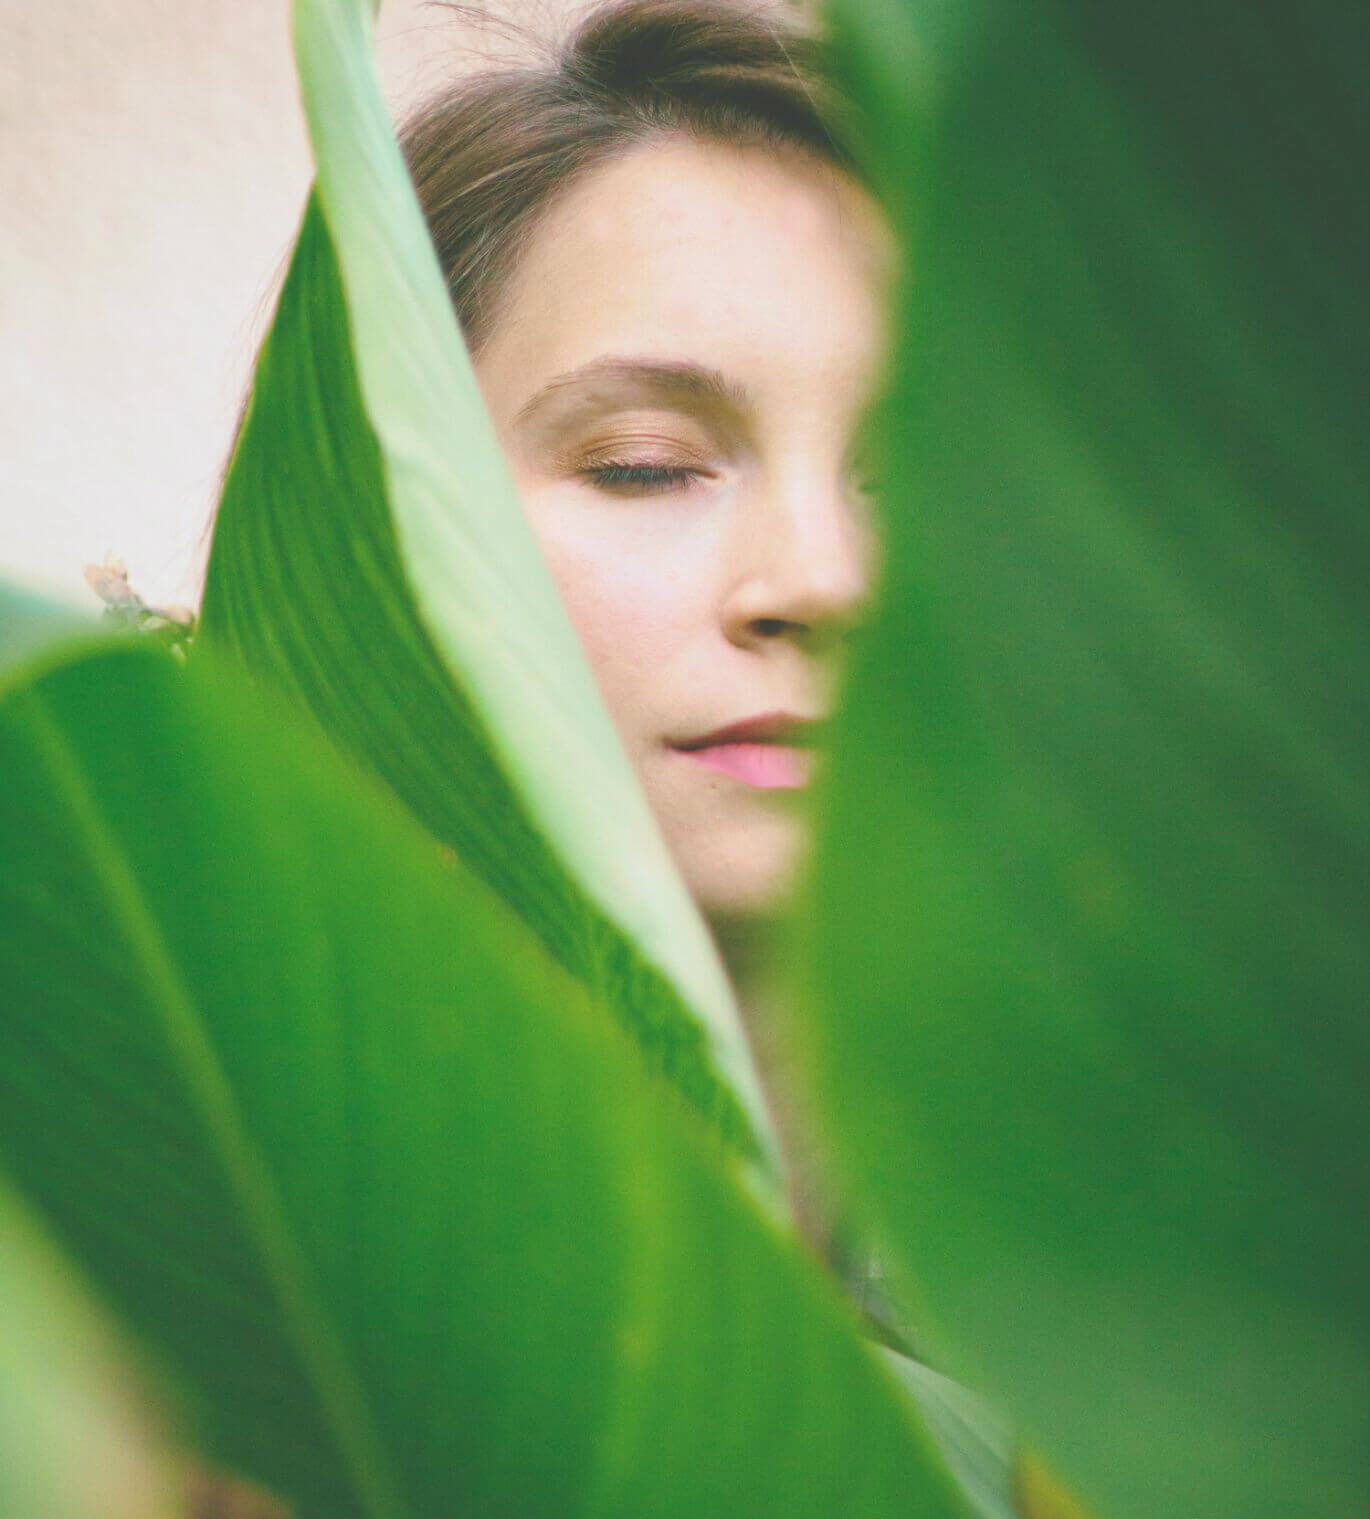 Big green leaves with a peaceful woman with closed eyes in the background.